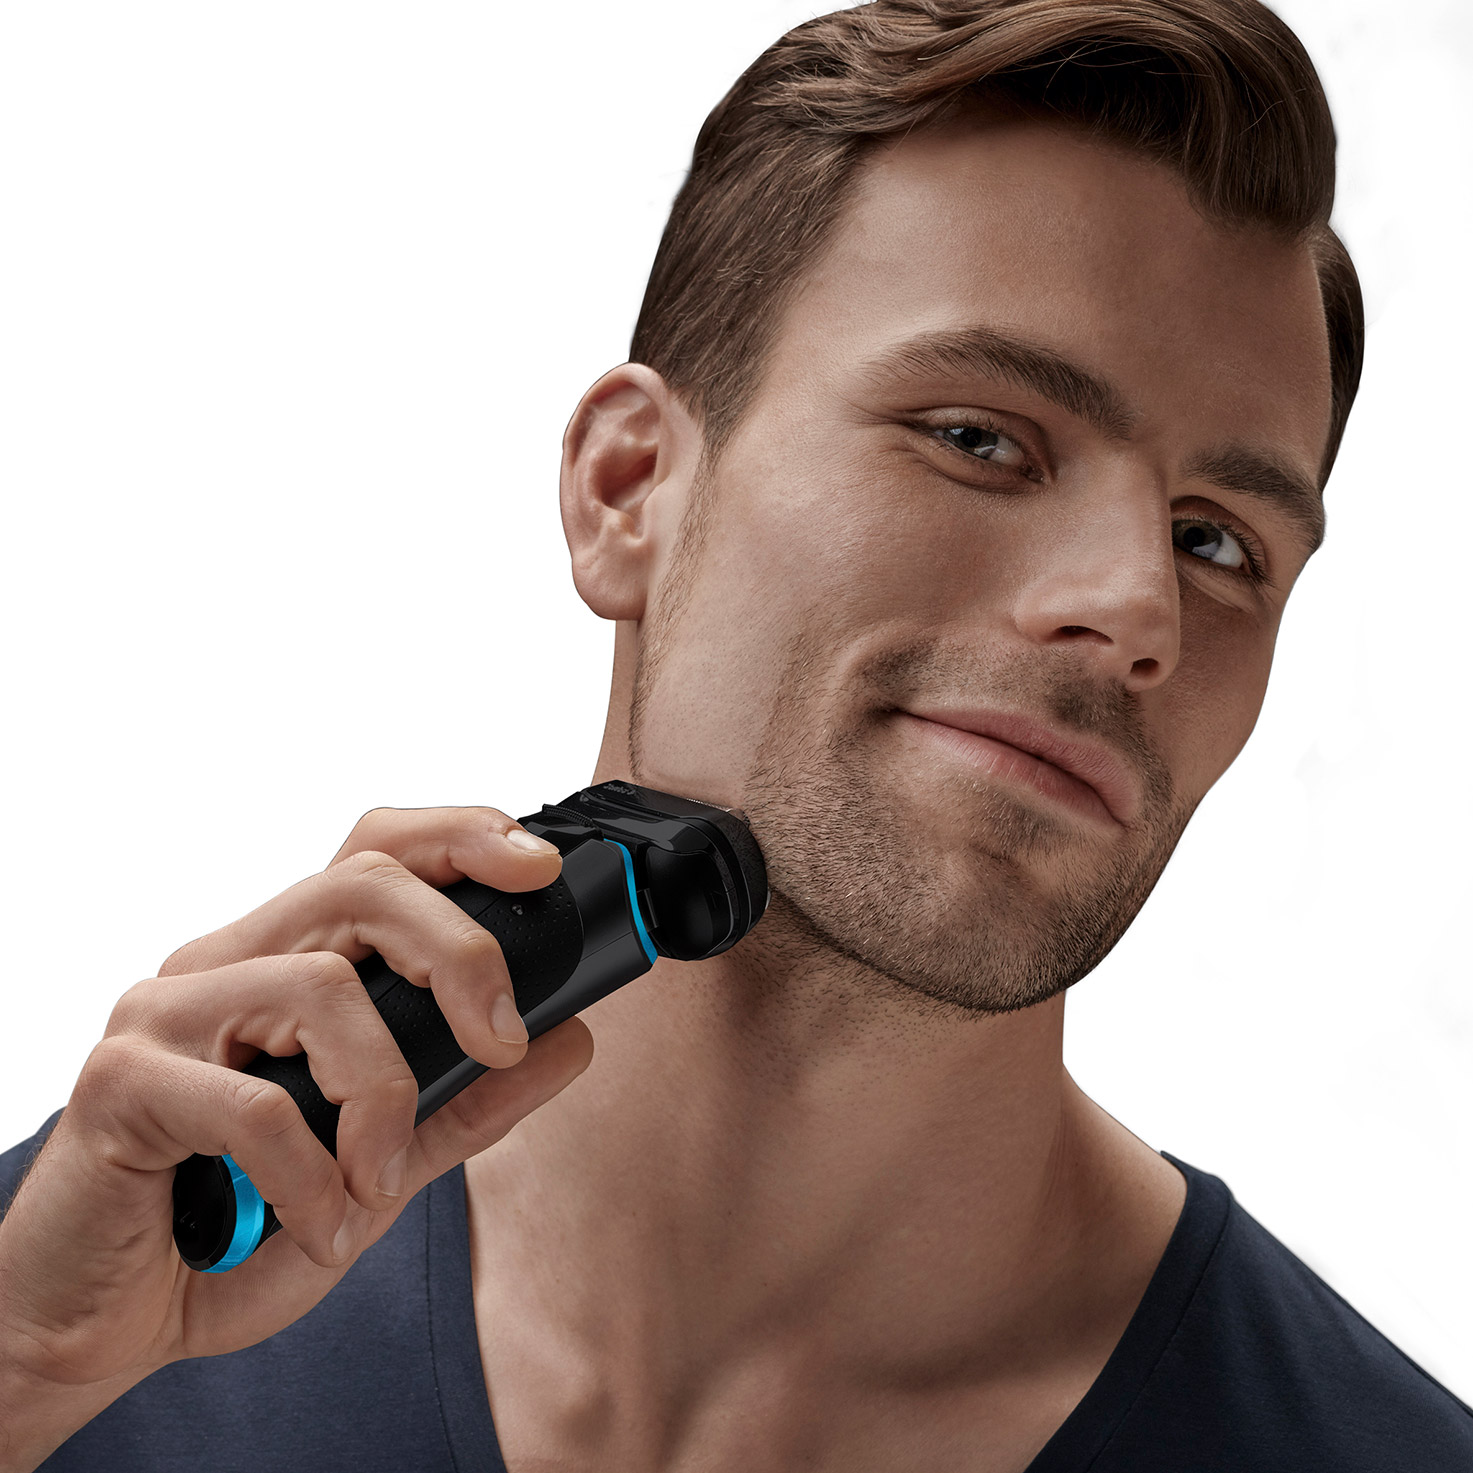 Braun Series 9 shaver - In use